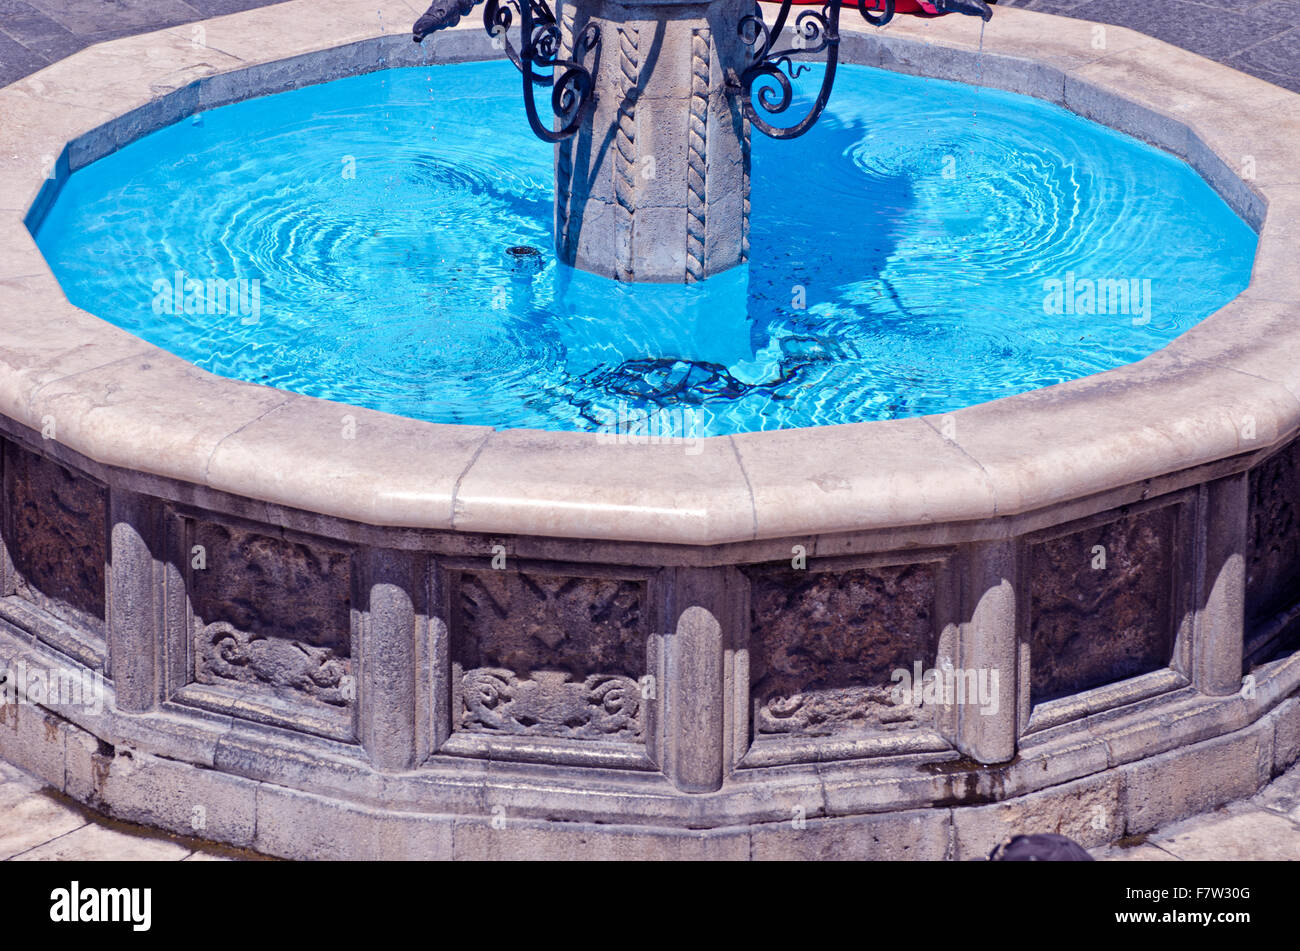 Fountain blue stock photos images